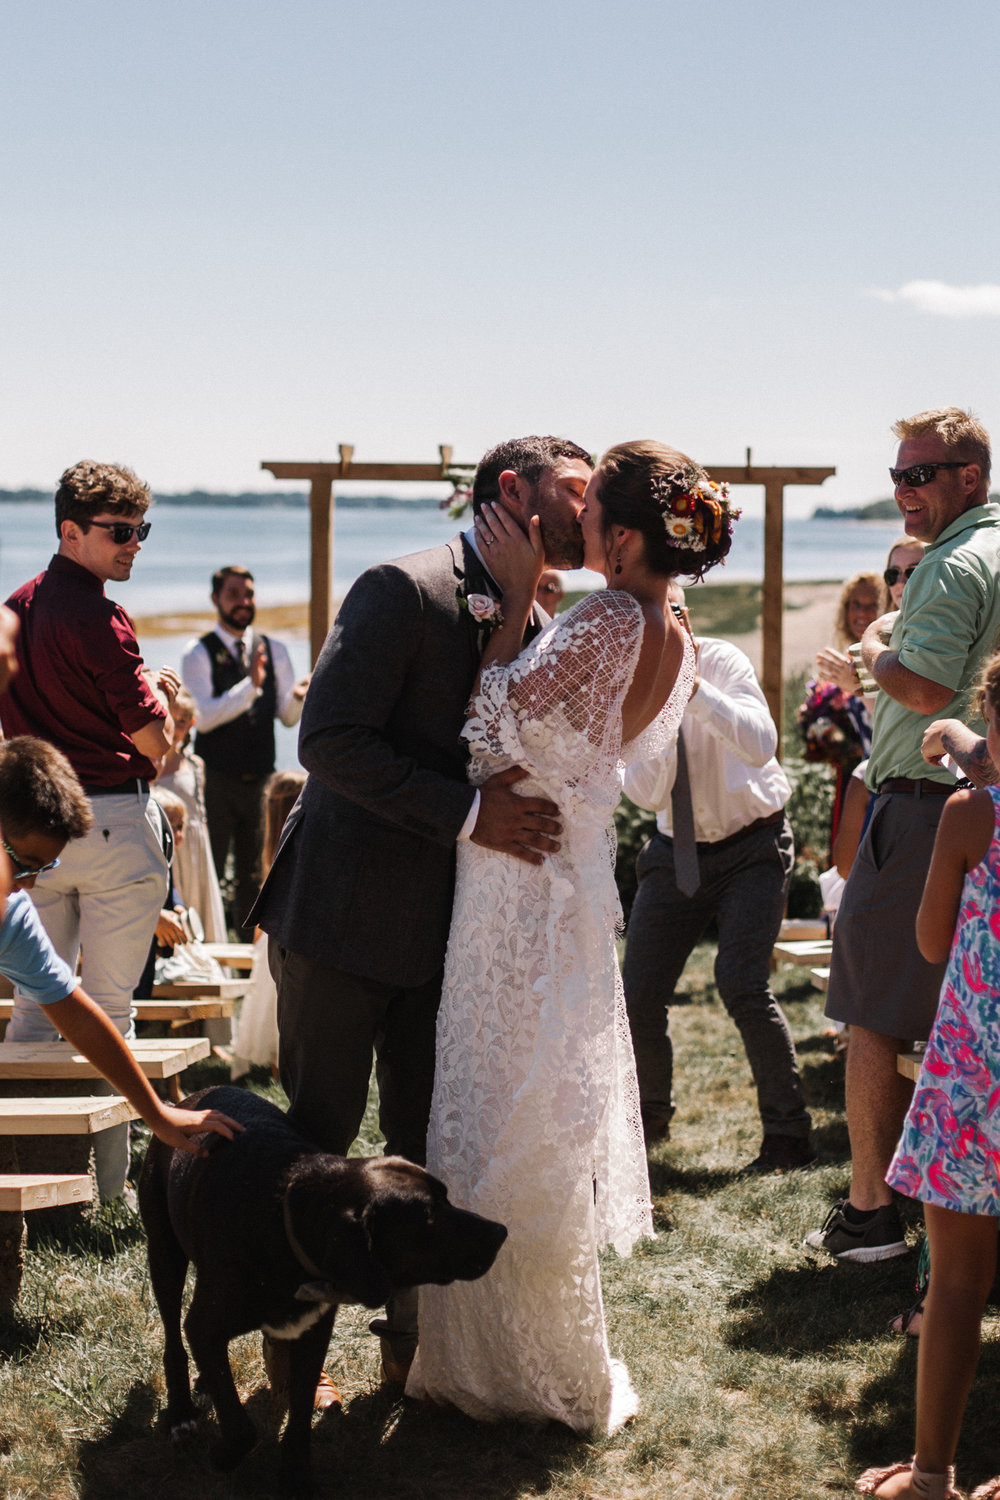 Damian and Jesse Chebeague Island Maine Backyard Destination Beach Wedding White Sails Creative_106.JPG